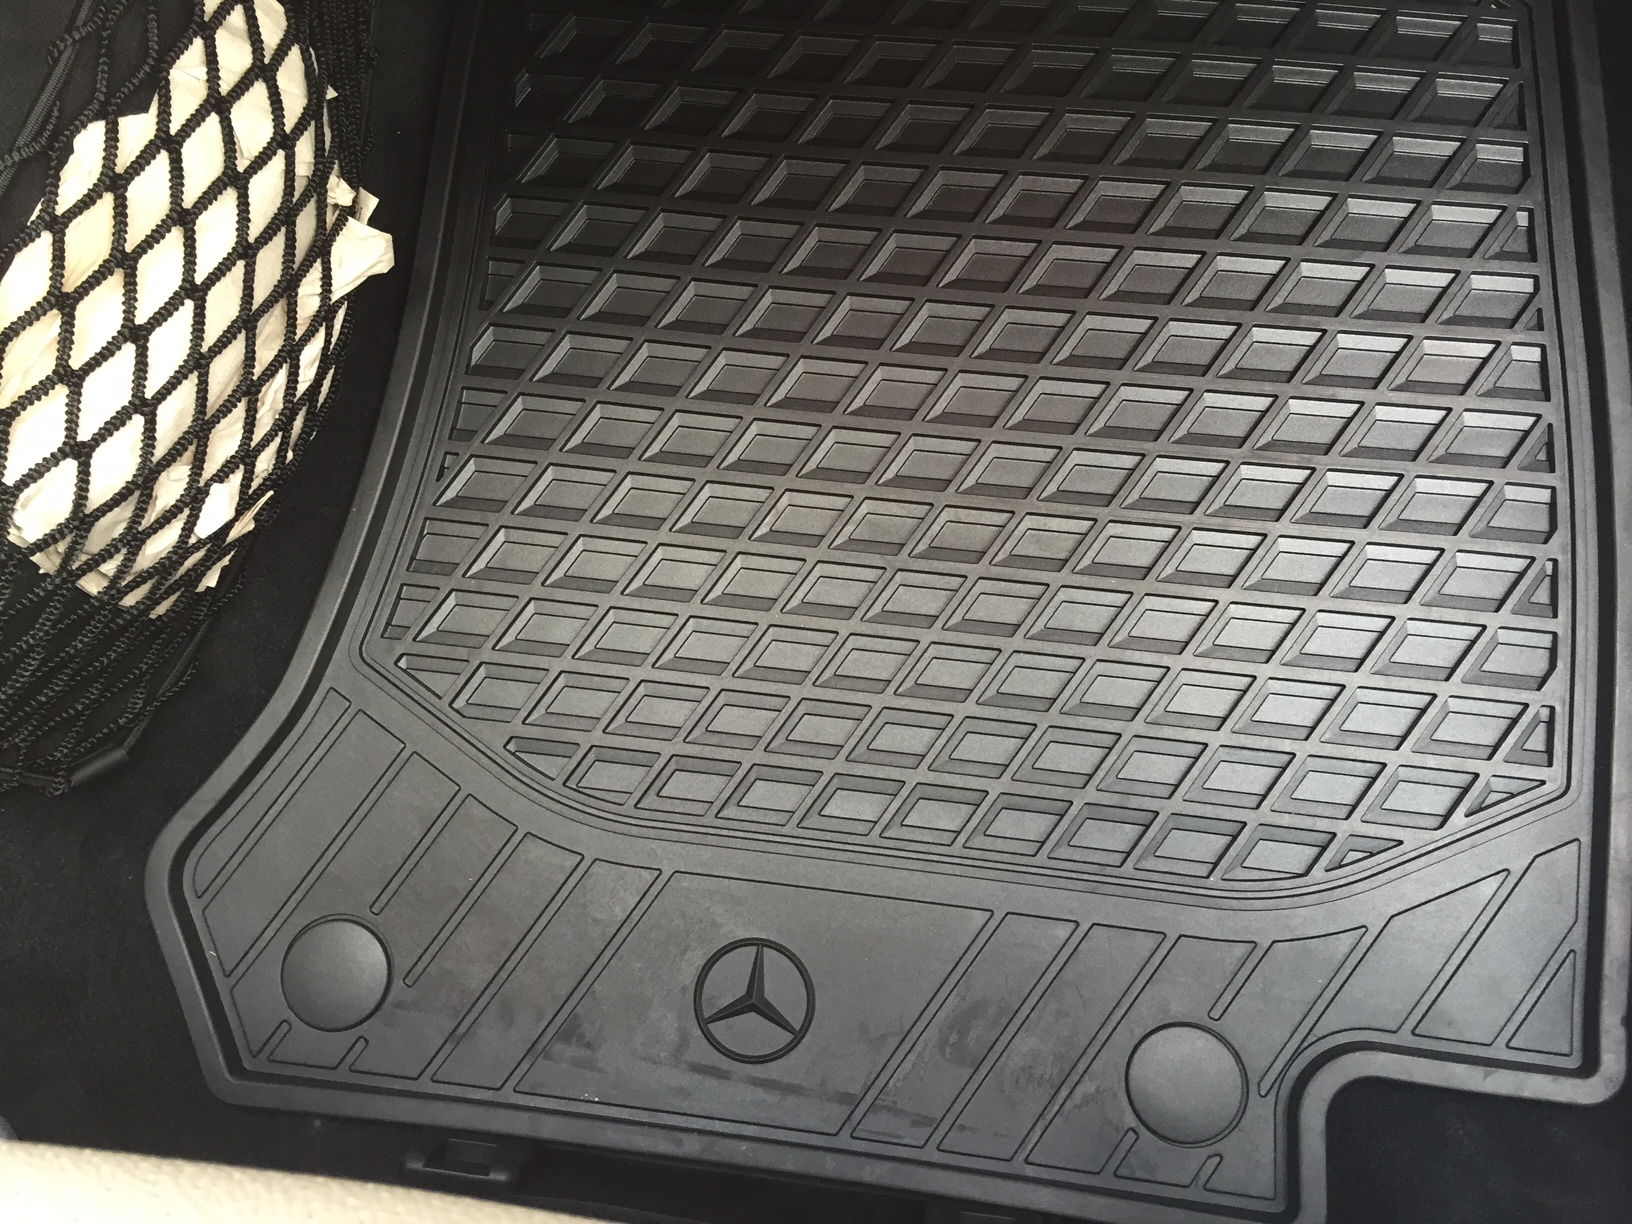 Floor mats us - Carpeted Floor Mats Are Standard In The Us Mercedes Does Offer All Season Mats Specifically For The Glc Here S A Picture Of The Mb All Season Mats In Our